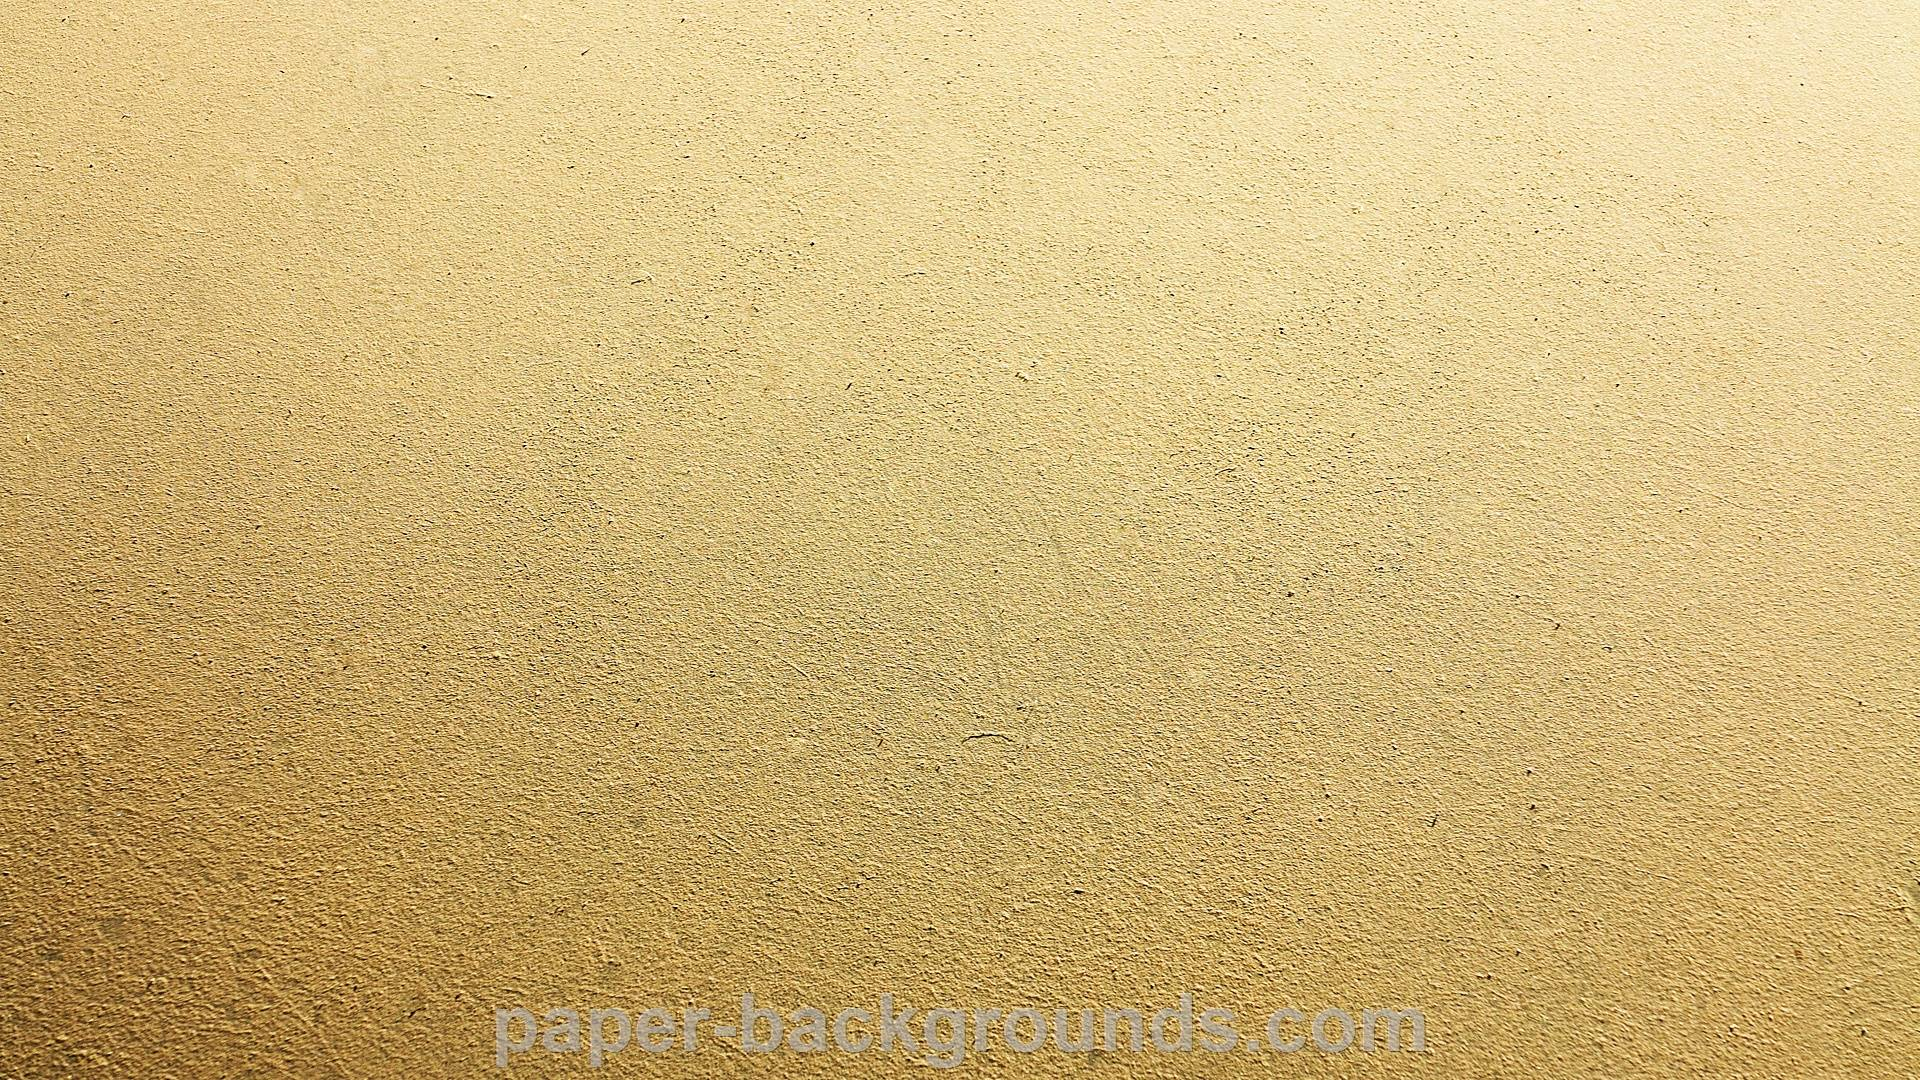 Textured wallpaper backgrounds wallpaper cave for Gold wallpaper for walls